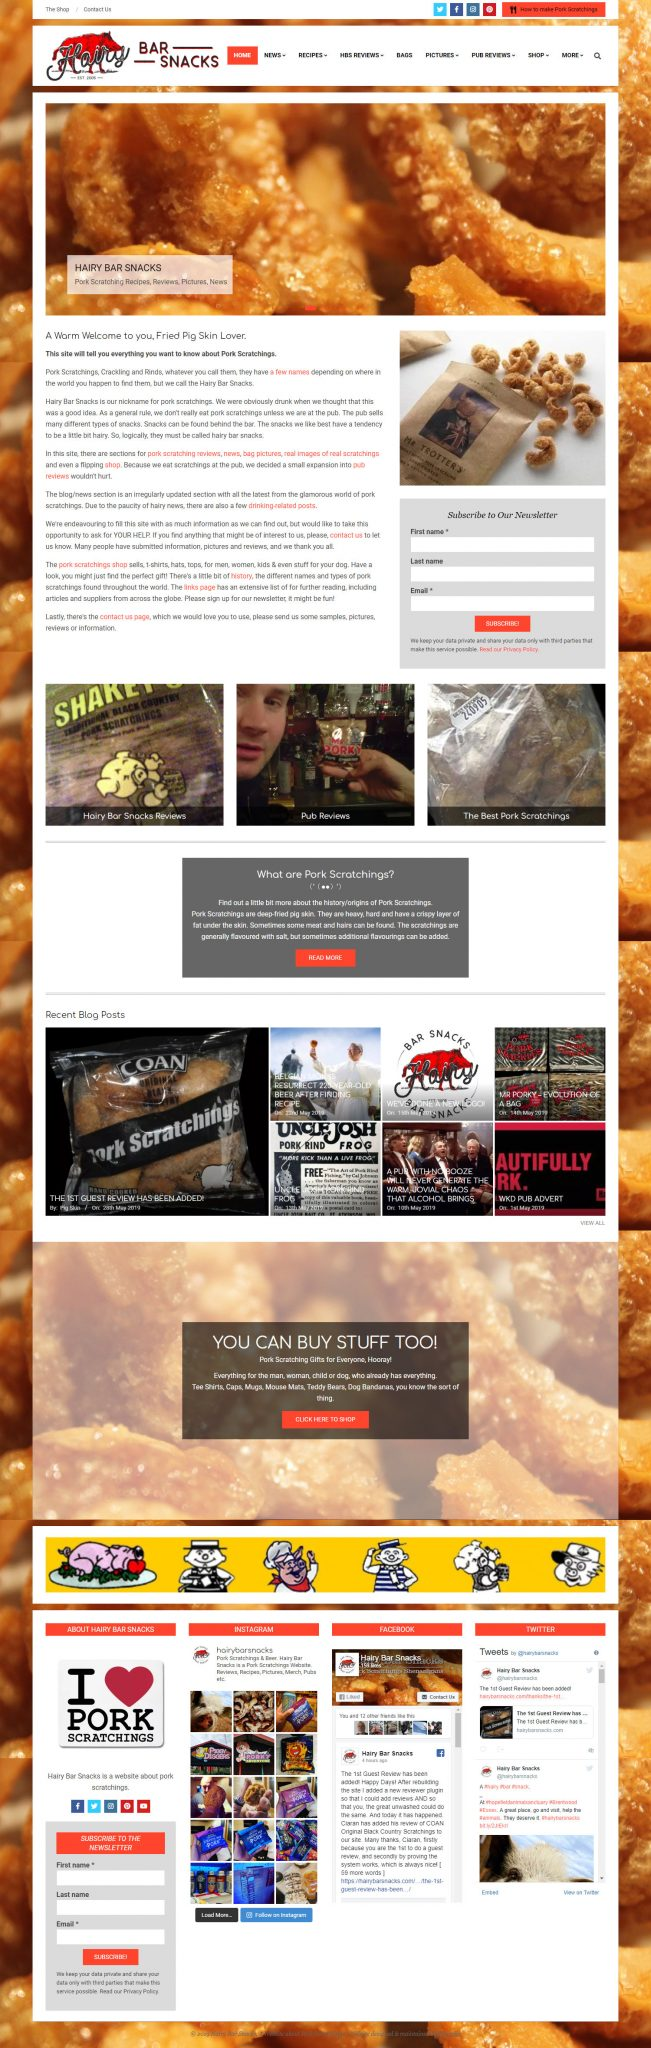 new hairy bar snacks website design - Website Redesign and Tidy Up